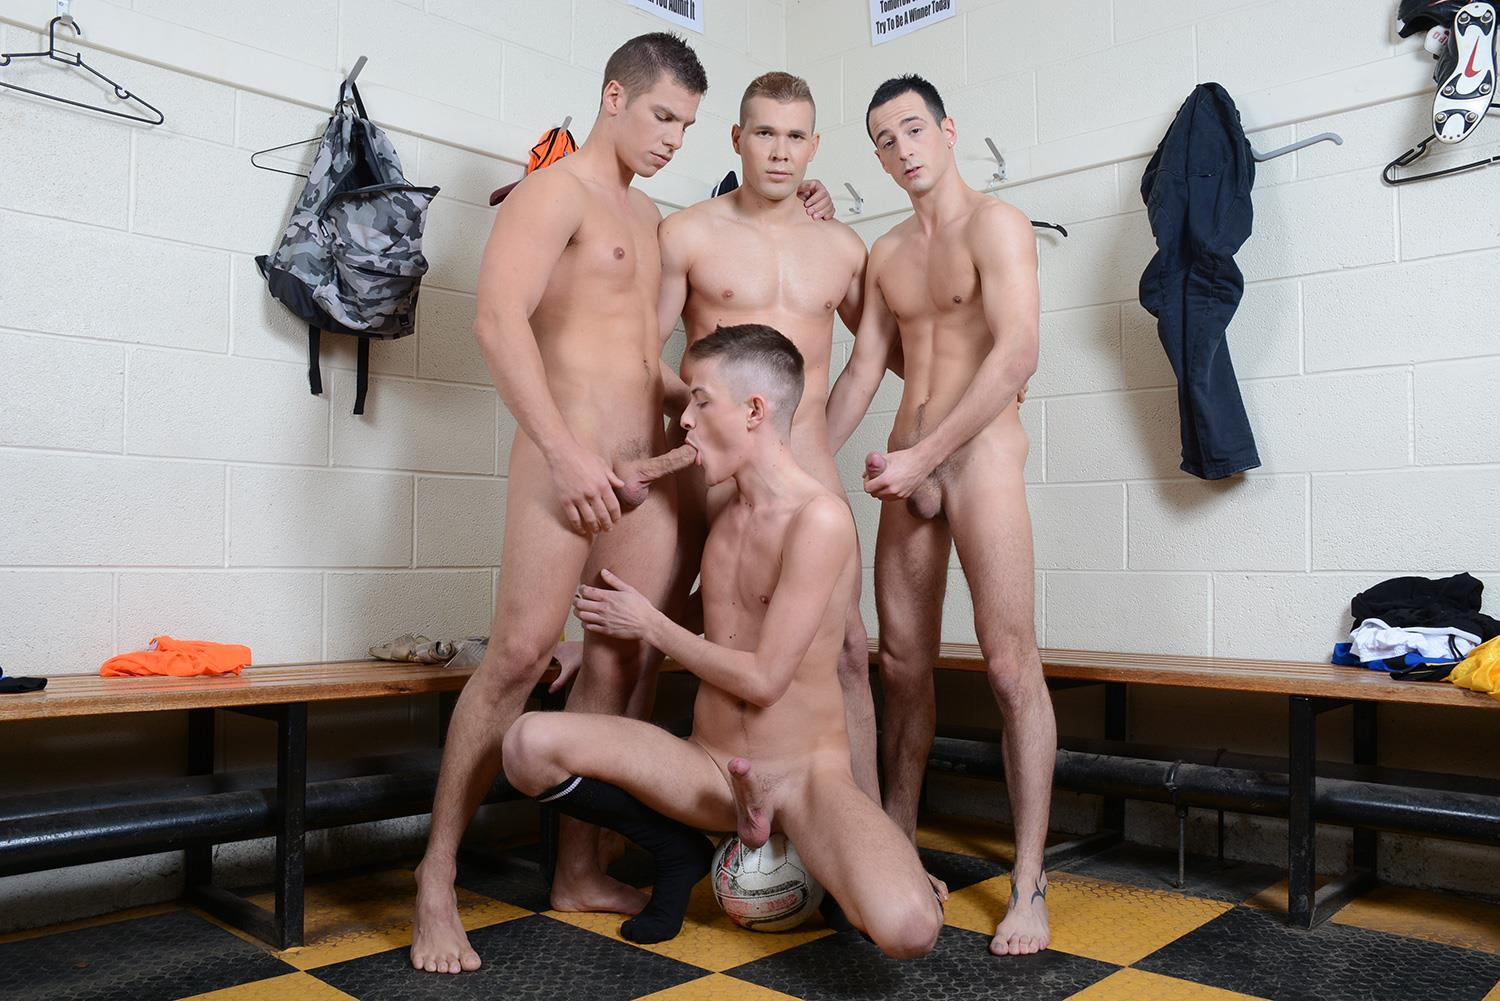 Staxus-Sportladz-Jordan-Fox-and-Luke-Desmond-and-Paul-Walker-and-Skylar-Blu-Amateur-Gay-Porn-06 World Cup Fever: Uncut Soccer Players Fucking In The Locker Room